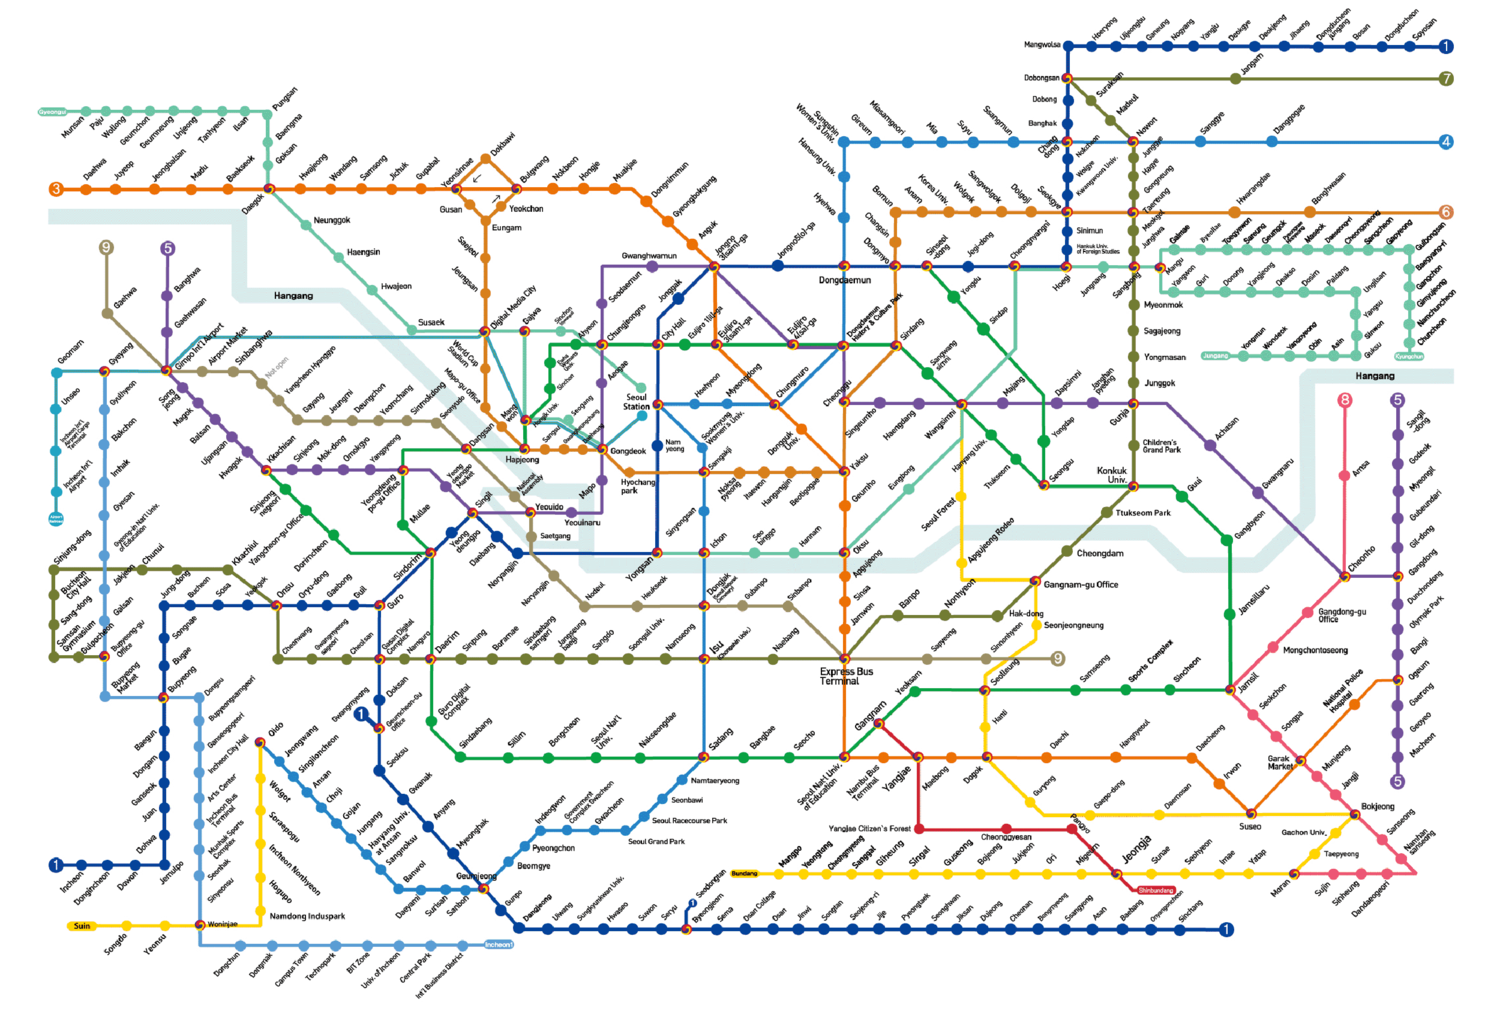 Seoul South Korea Subway Map.Using The Seoul Metro Where To Next Budget Travel Tips Solo Female Travel Help Travel Guides Travel Inspiration Travel Photography